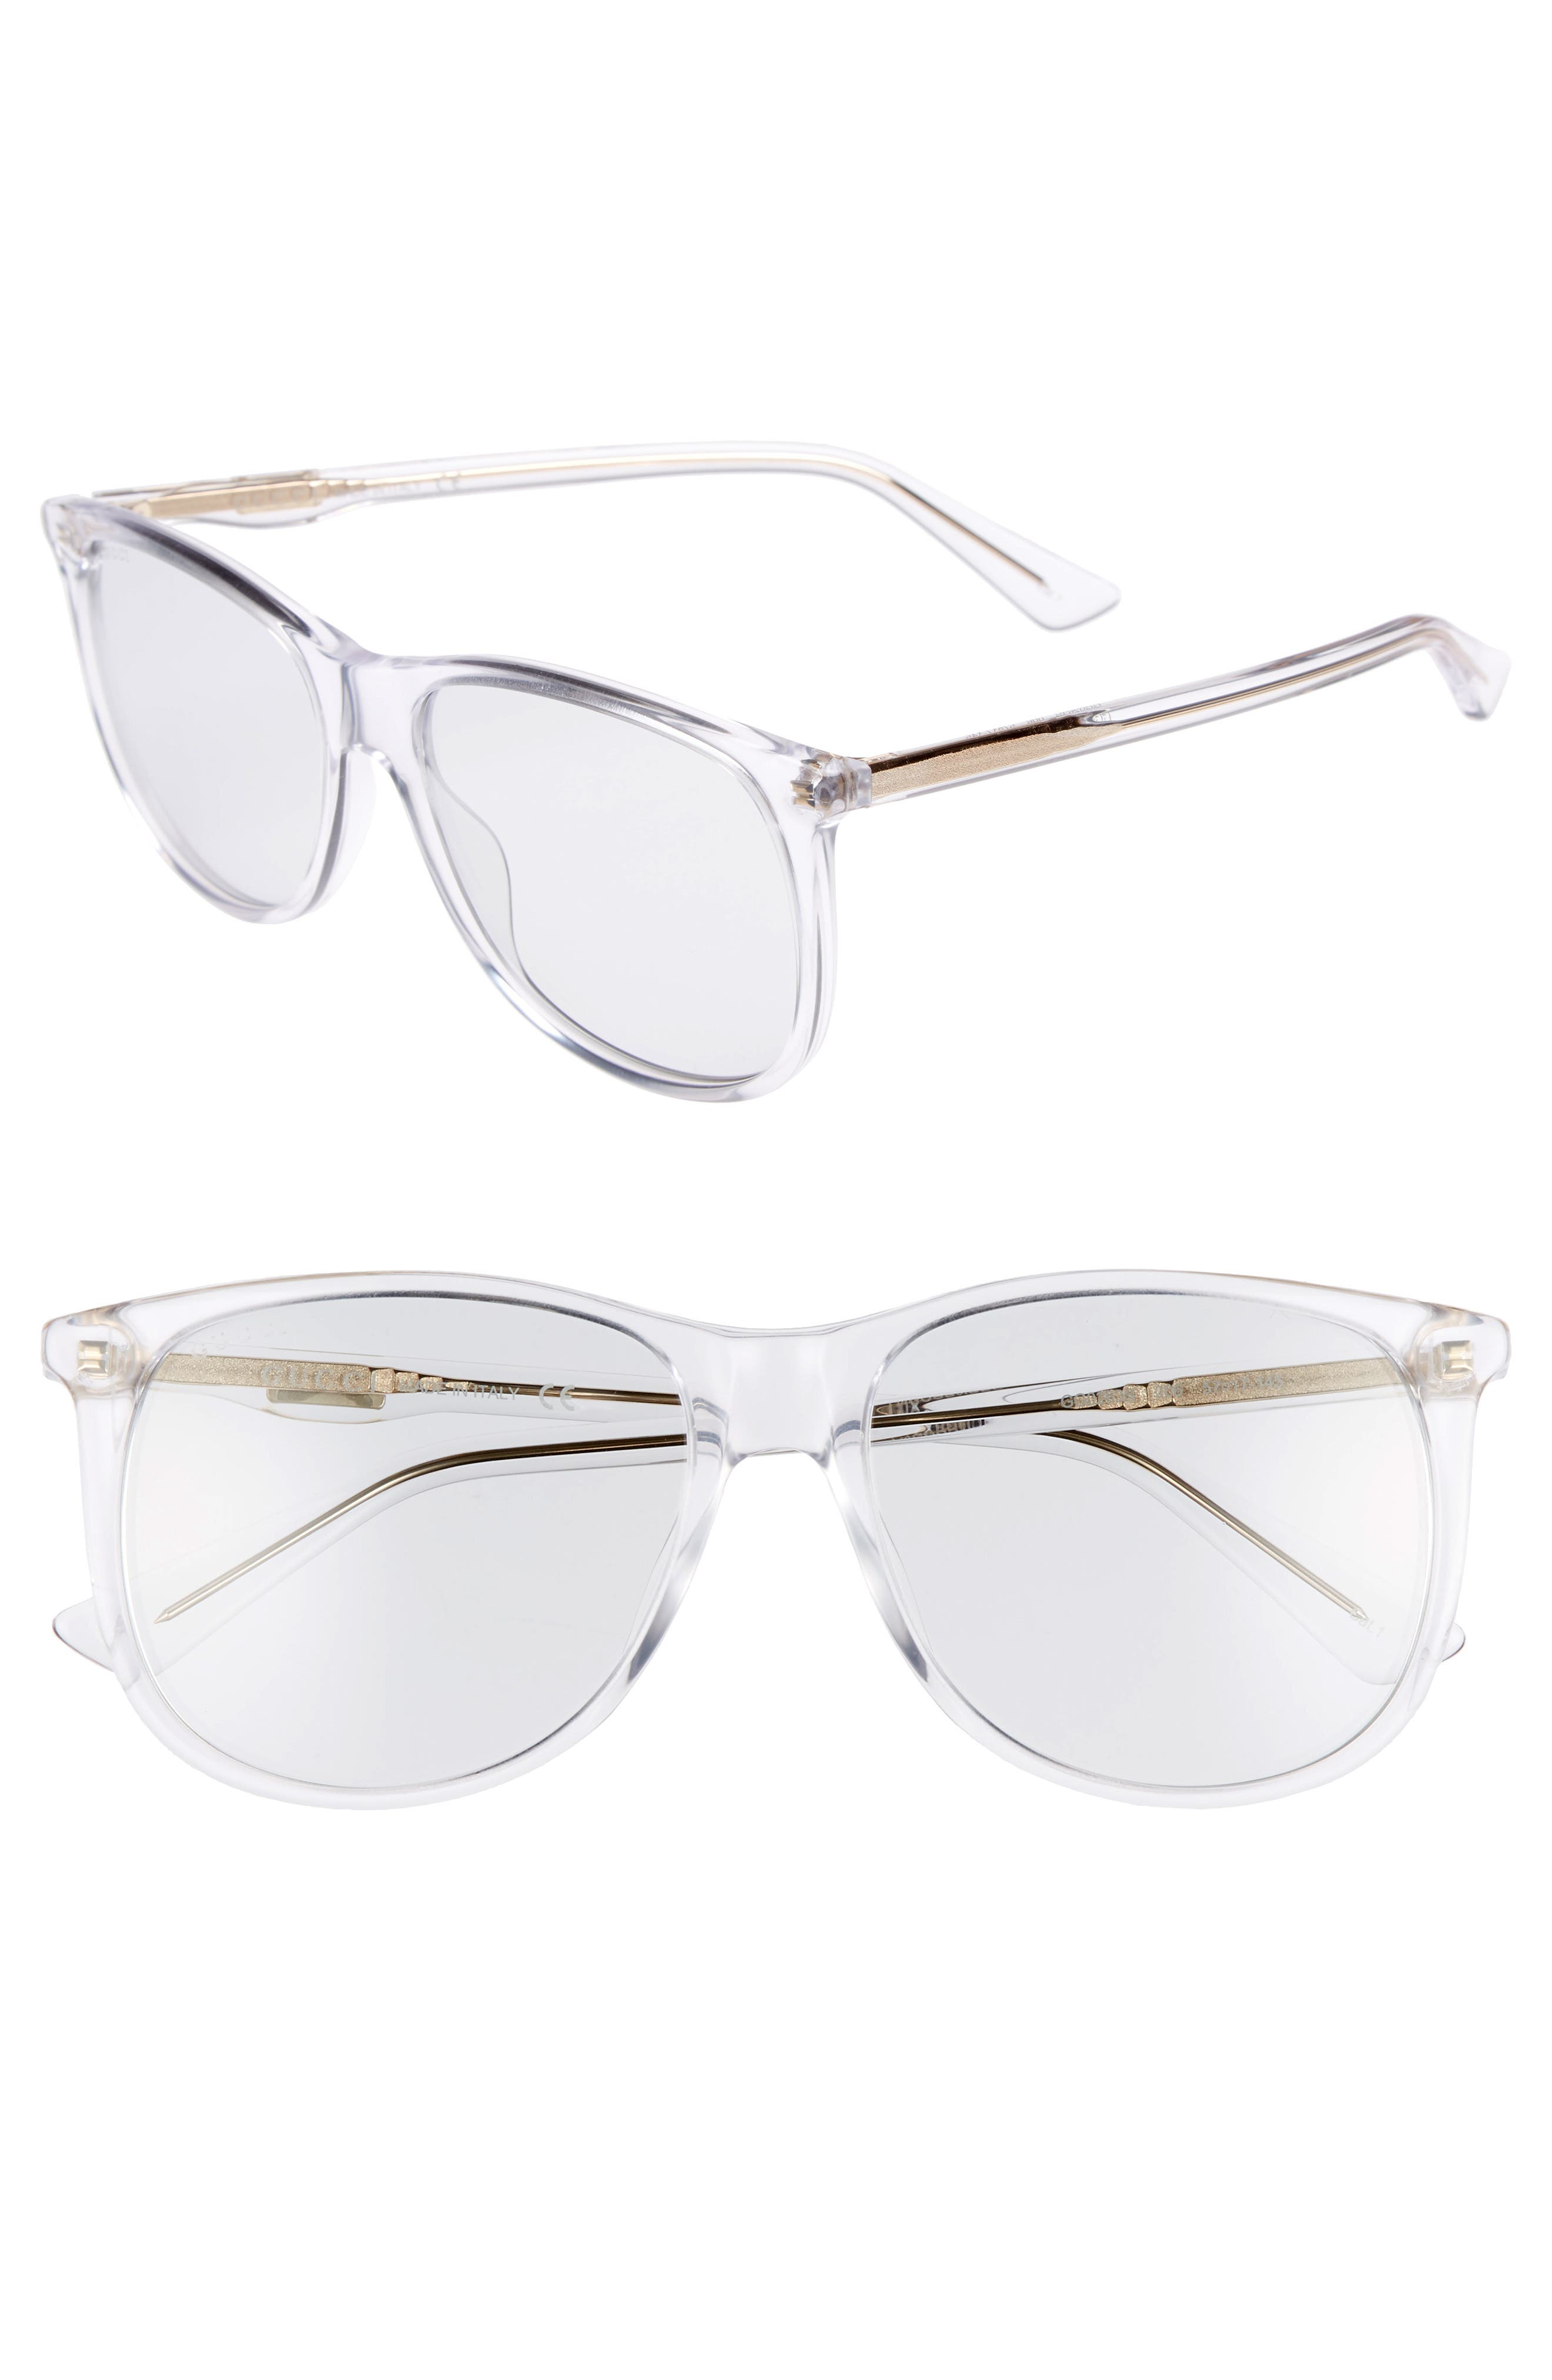 80s 56mm Sunglasses,                         Main,                         color, Crystal